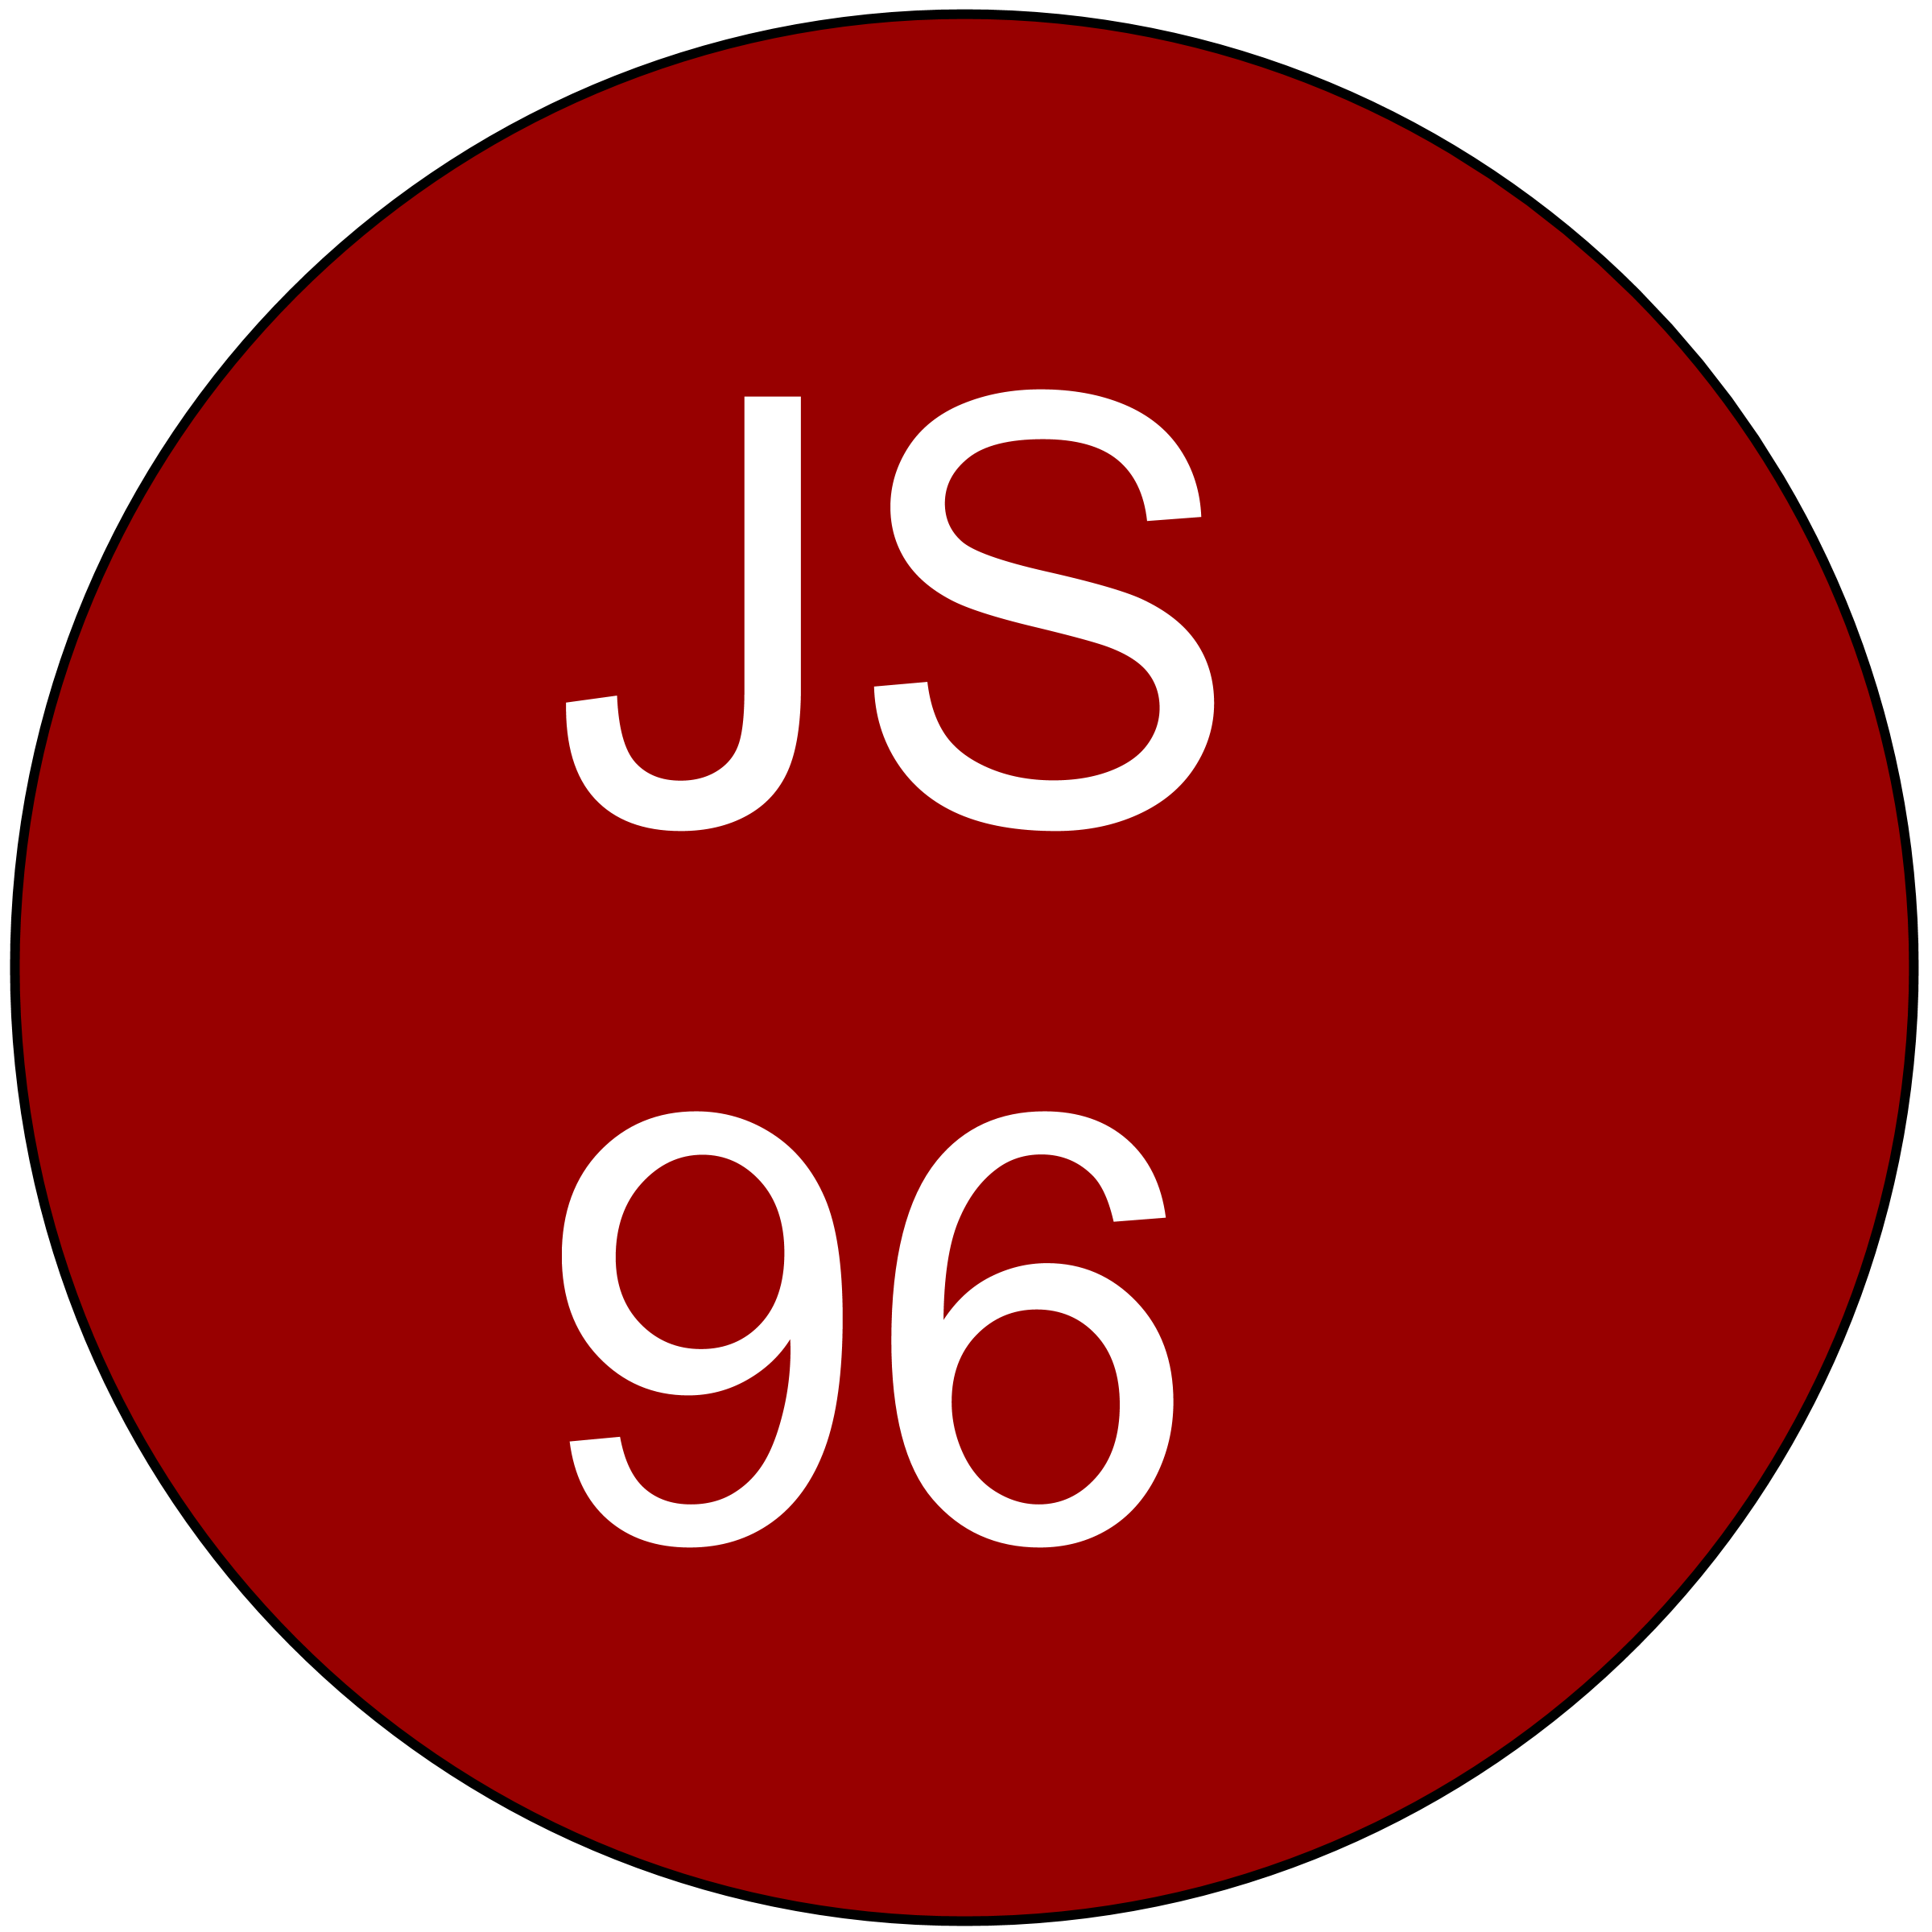 james-suckling-96-ratings